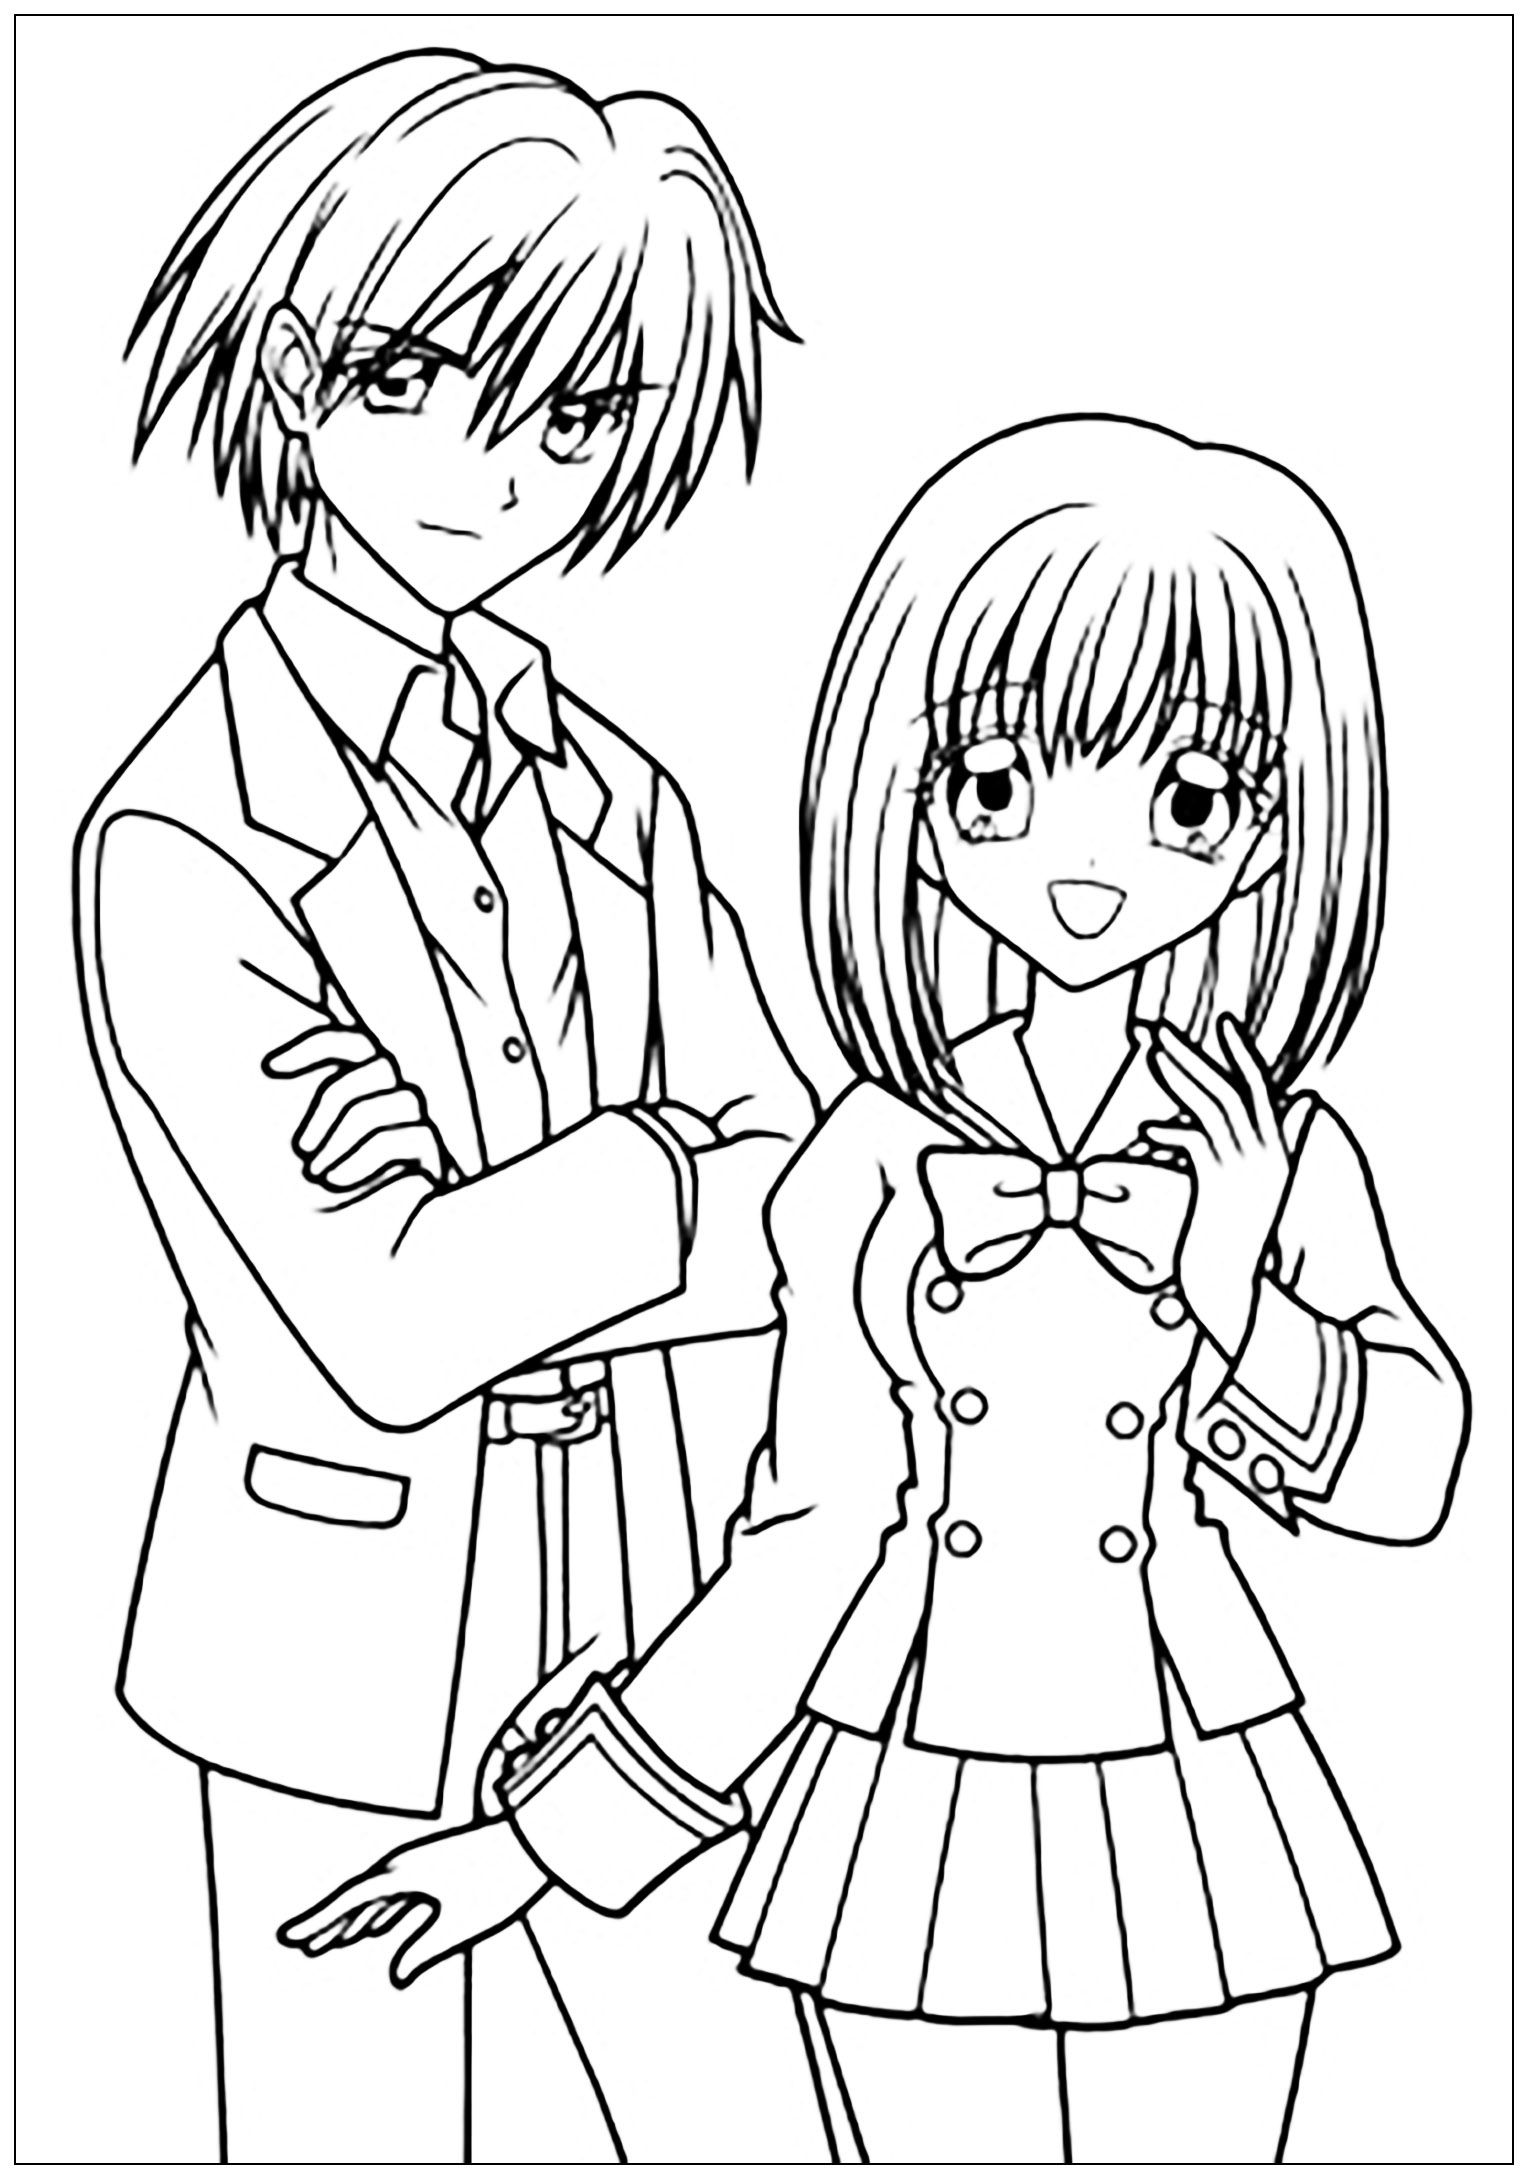 Manga Drawing Schoolchildren In Uniform From The Gallery Mangas Boy And Girl Drawing Cartoon Coloring Pages Coloring Pages For Boys